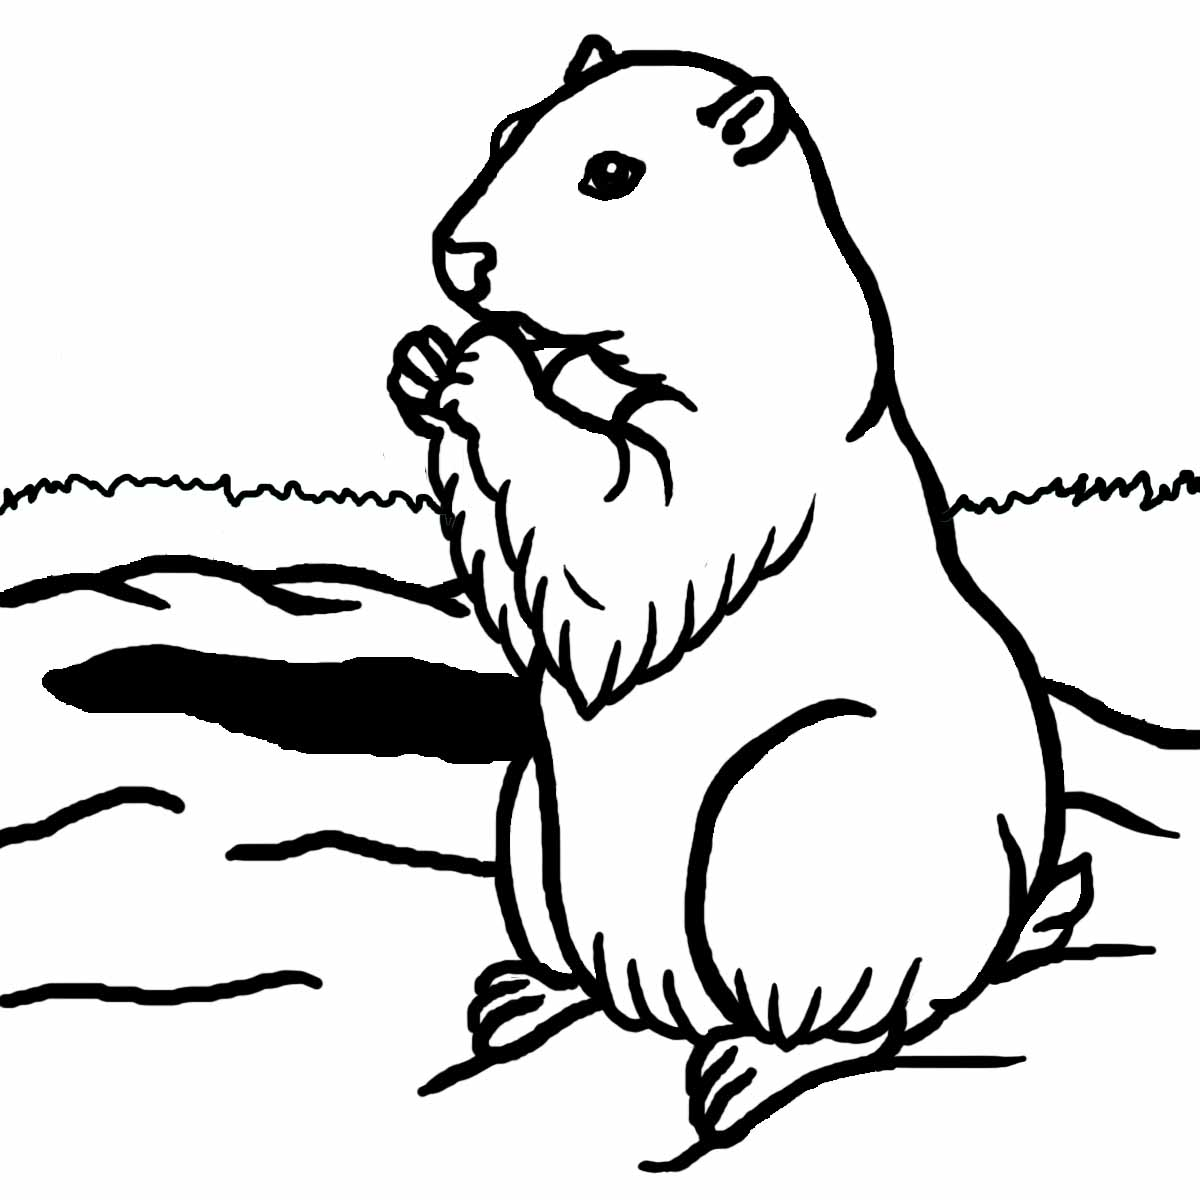 Groundhog Shadow Clipart Images Pictures